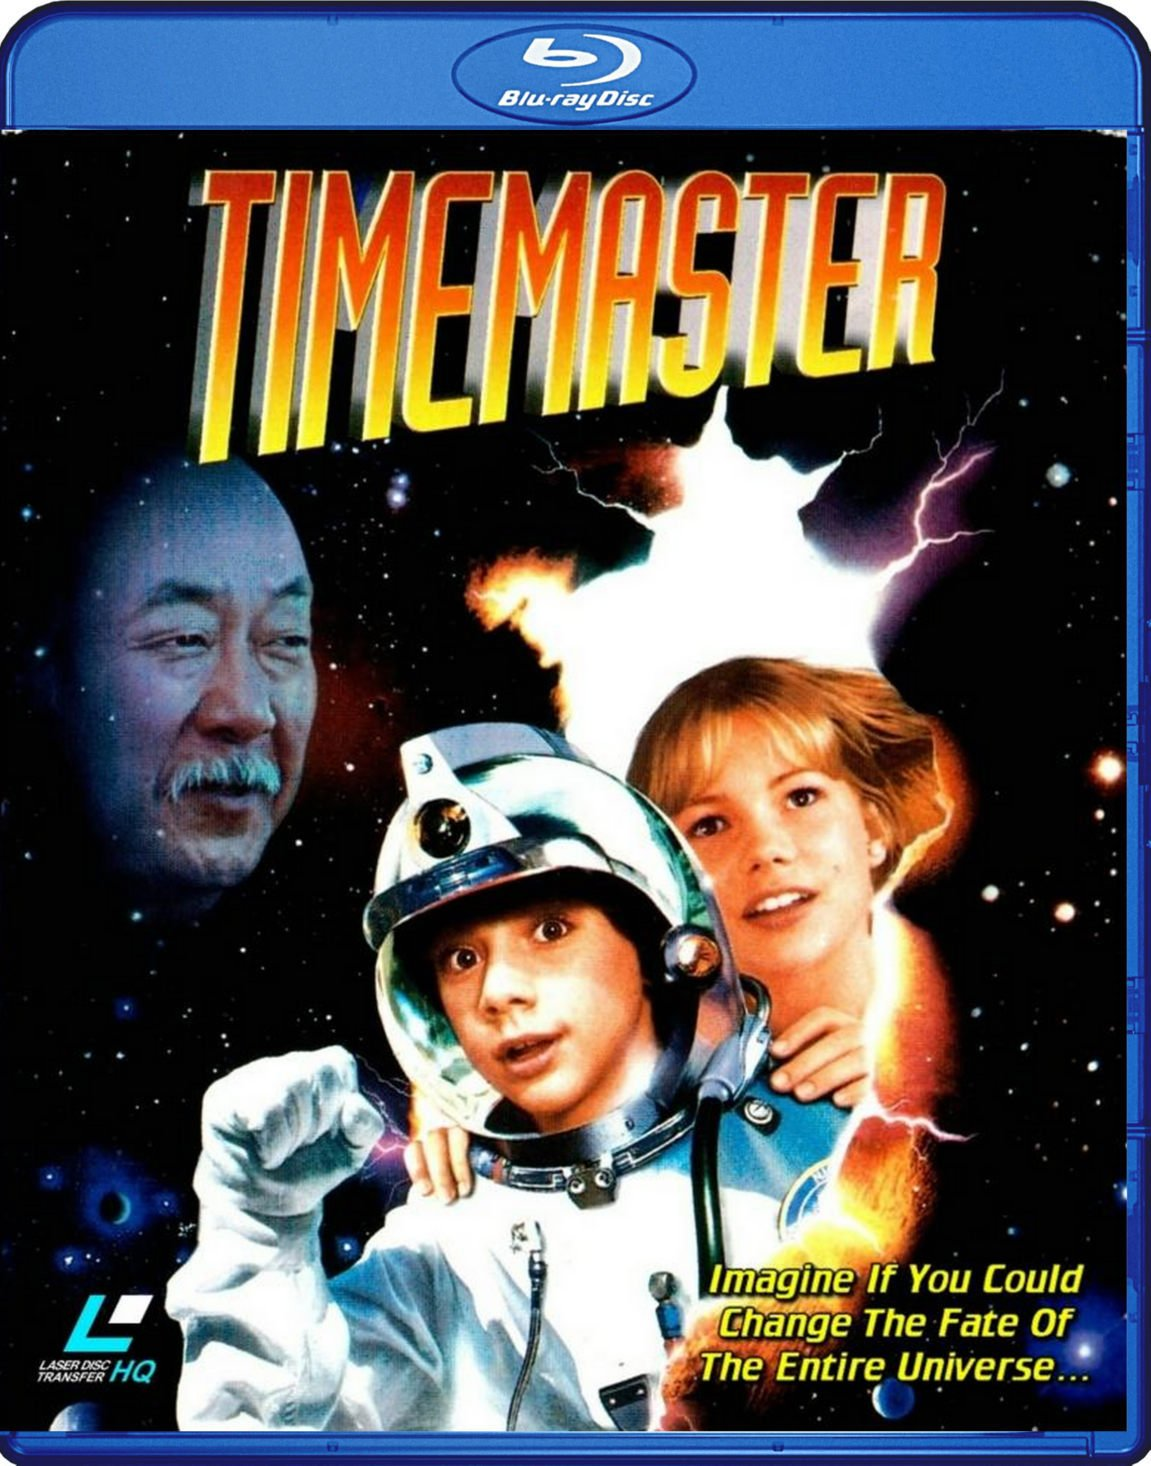 Timemaster Blu-Ray (1995) Transferred from Lazerdisc to Blu-Ray